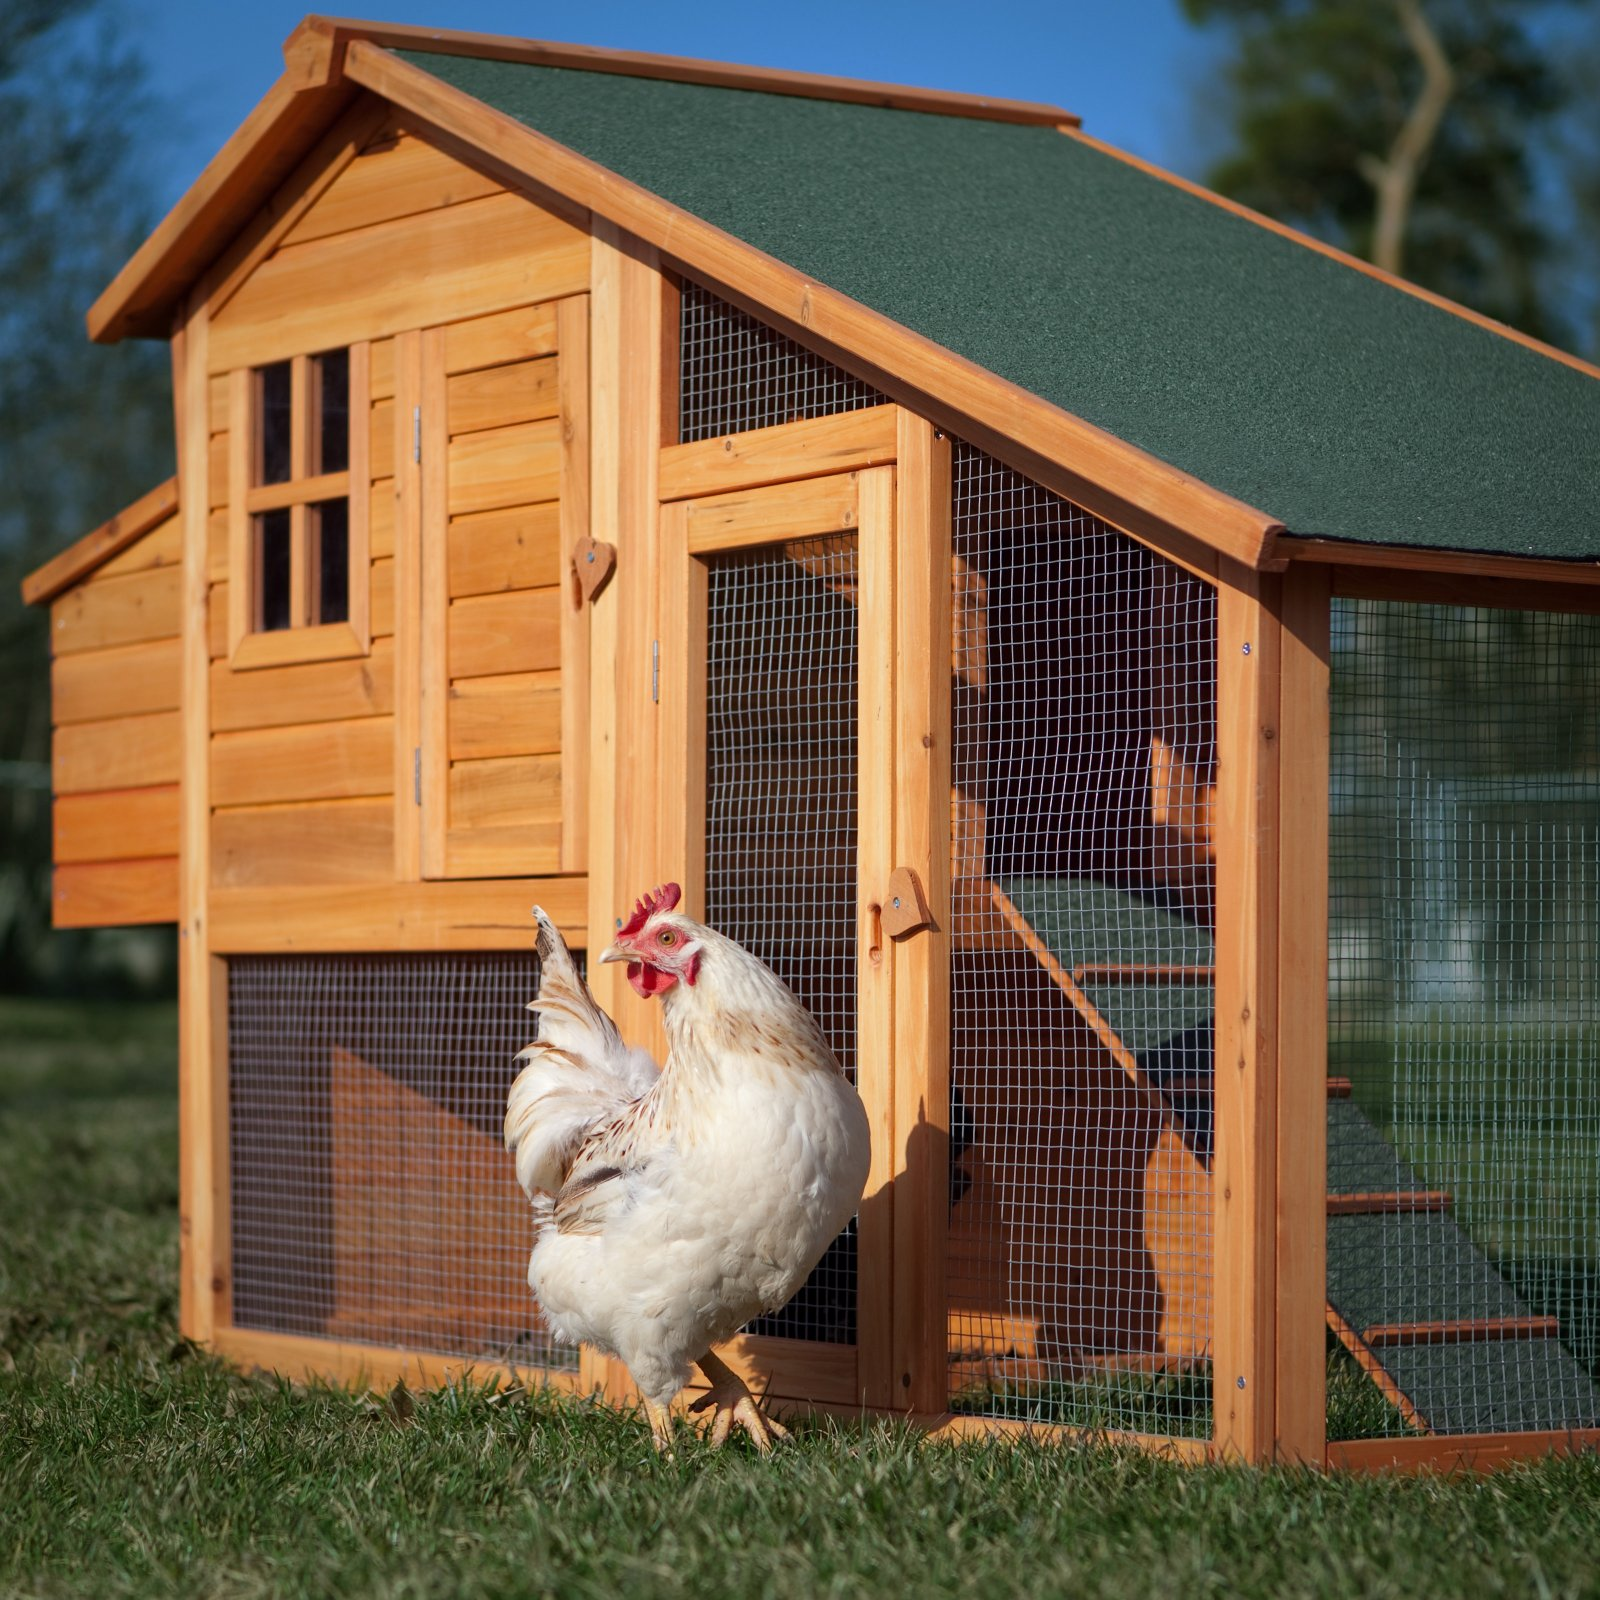 Wood work how to build a portable chicken coop plans and for Portable coop